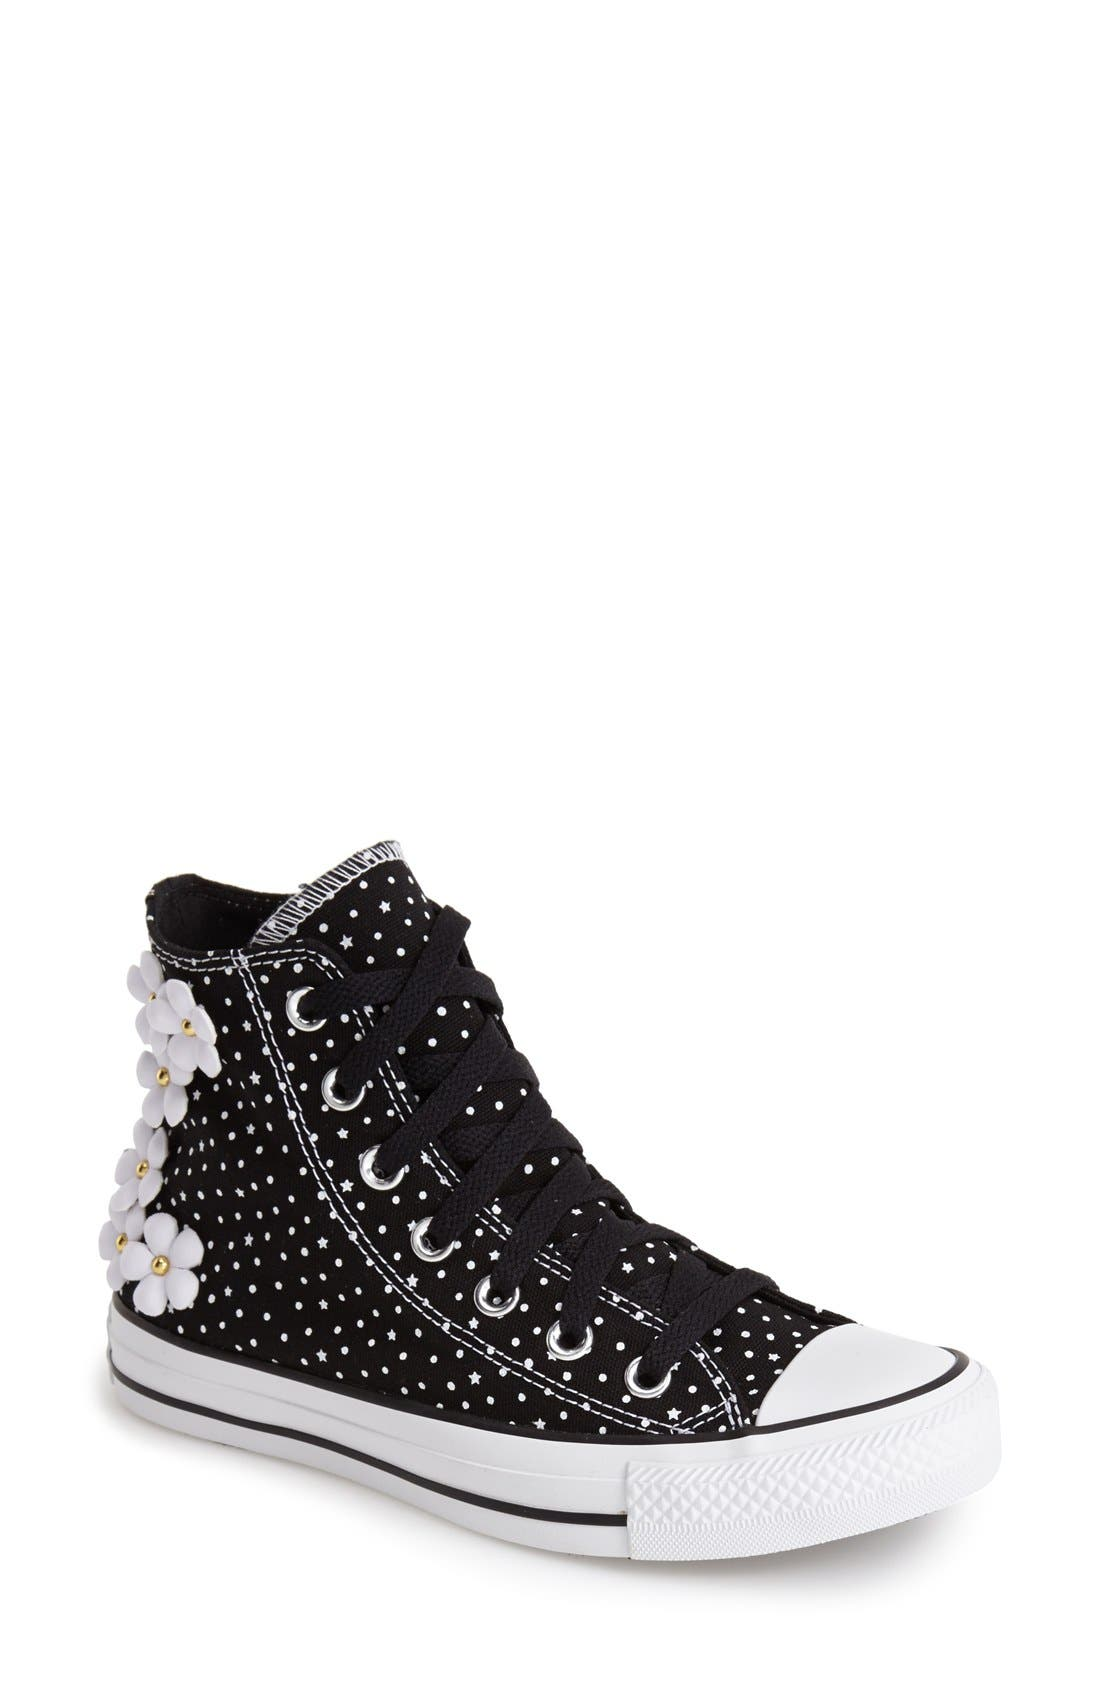 Main Image - Converse Chuck Taylor® All Star® 'Floral Polka Dot' High Top Sneaker (Women)